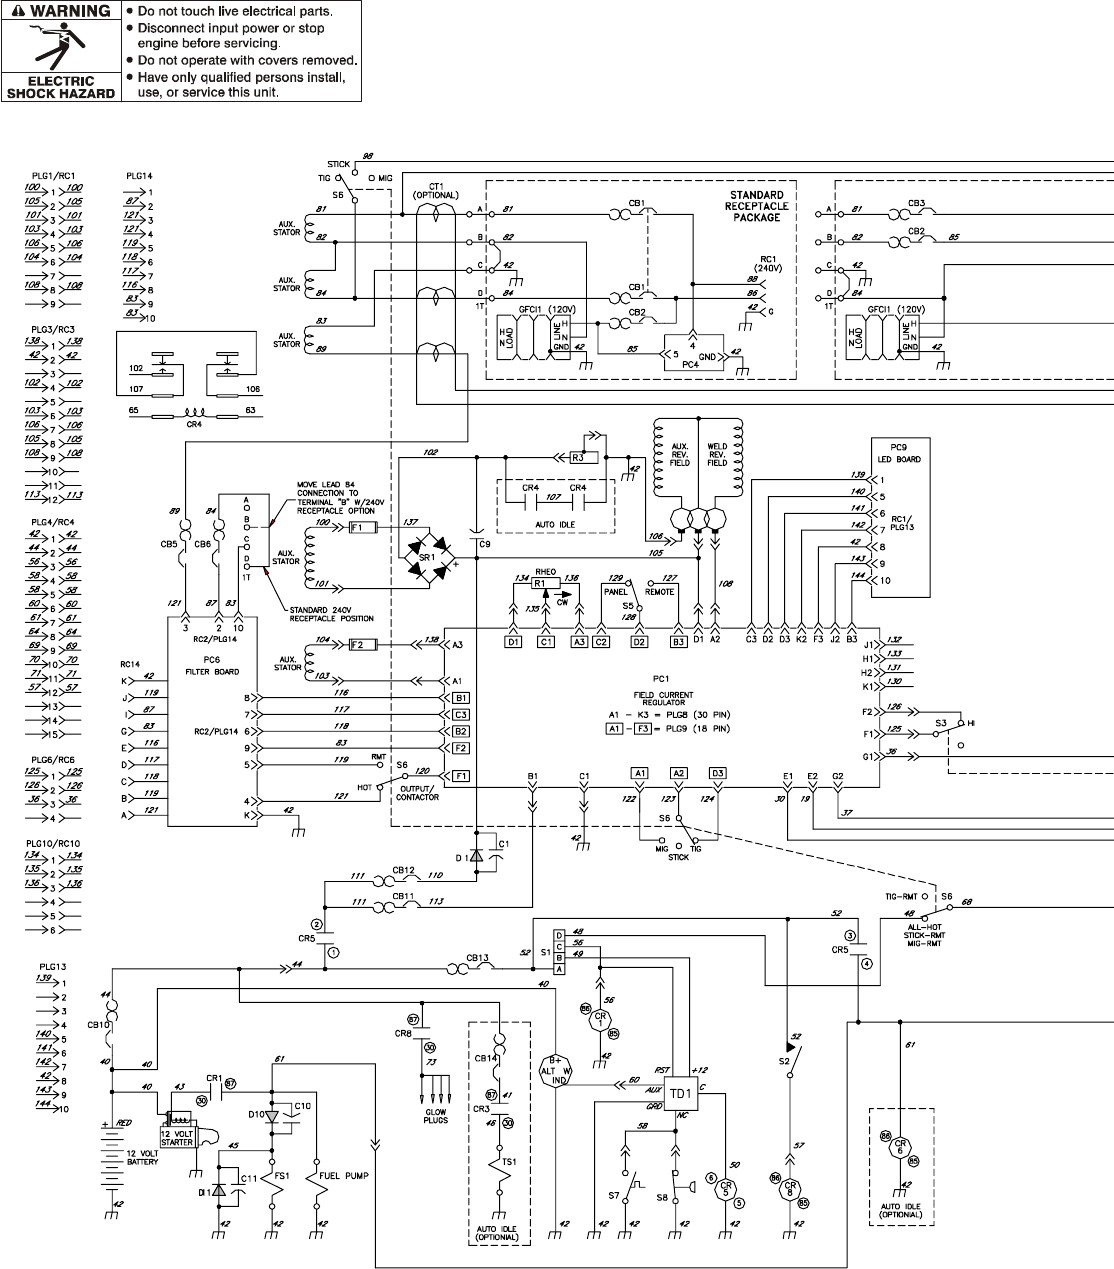 lincoln for sa 200 wiring schematic lincoln welder sa 200 wiring diagram lincoln sae wiring diagram  [ 1114 x 1269 Pixel ]